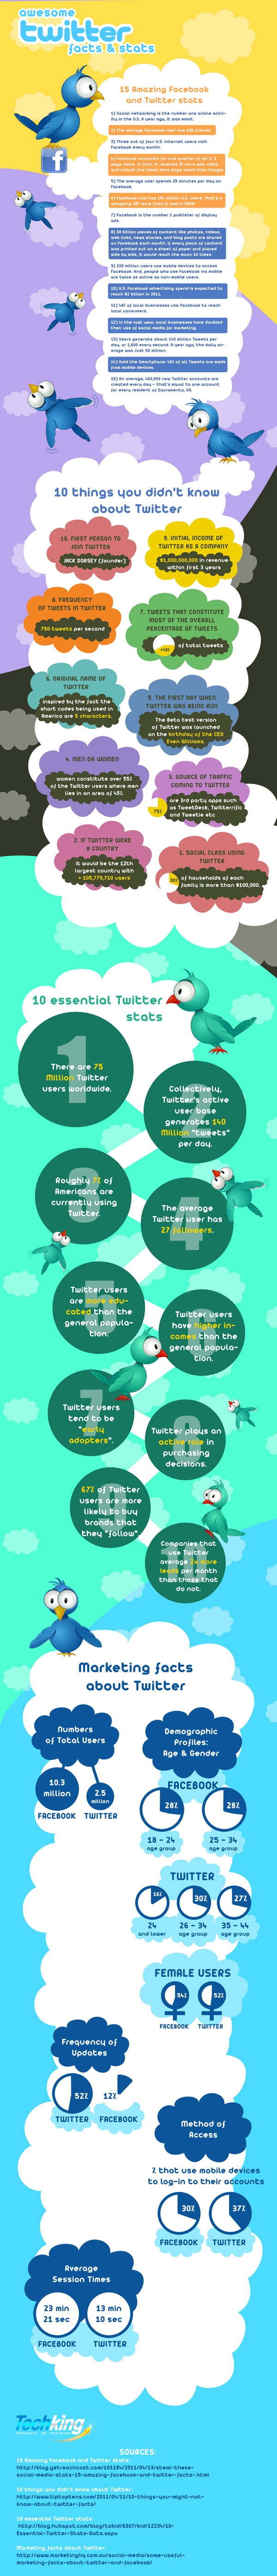 Awesome Twitter Facts & Stats - Infographic